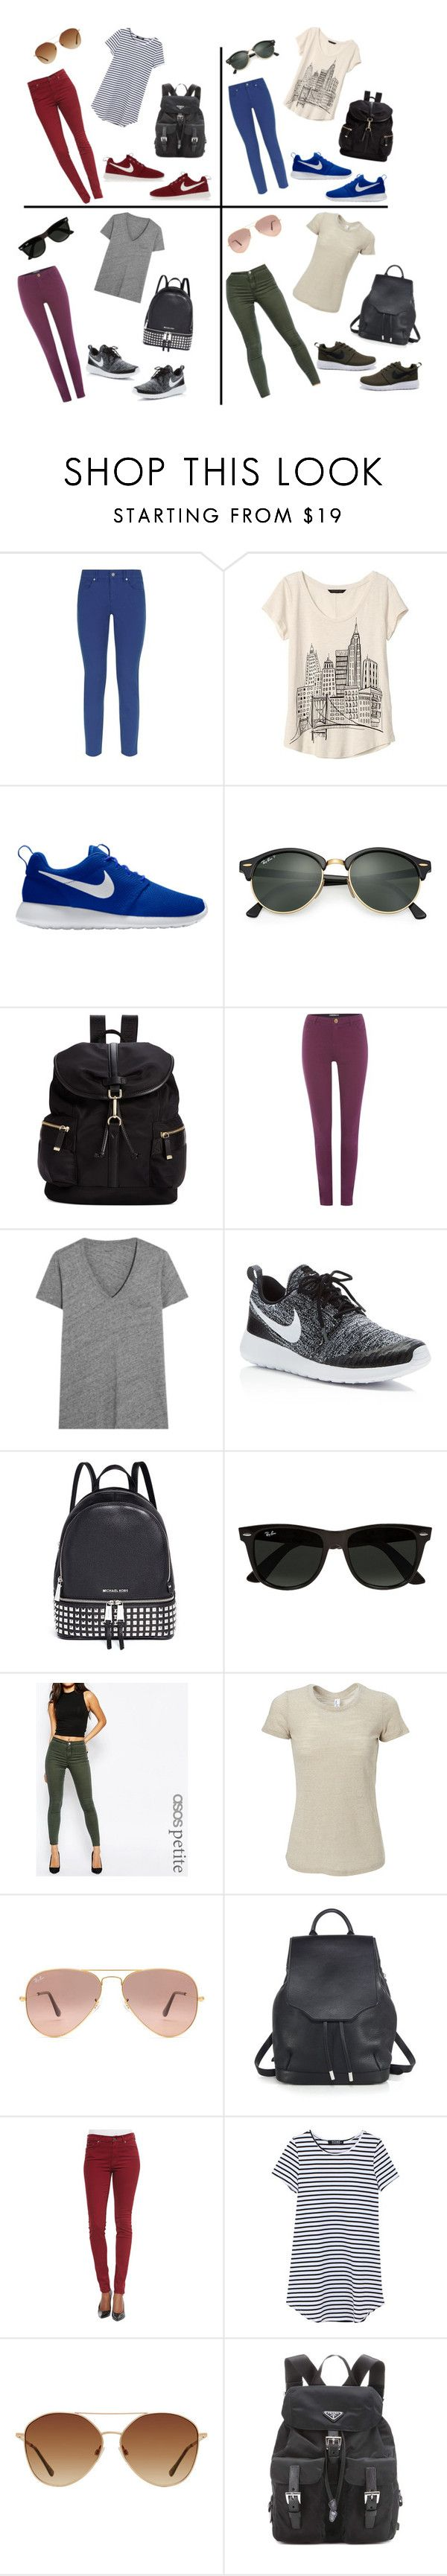 """""""Style all in one! #ROSHE"""" by rosarojas-1 ❤ liked on Polyvore featuring Escada Sport, Banana Republic, NIKE, Ray-Ban, Calvin Klein, Madewell, Michael Kors, ASOS, Simplex Apparel and rag & bone"""